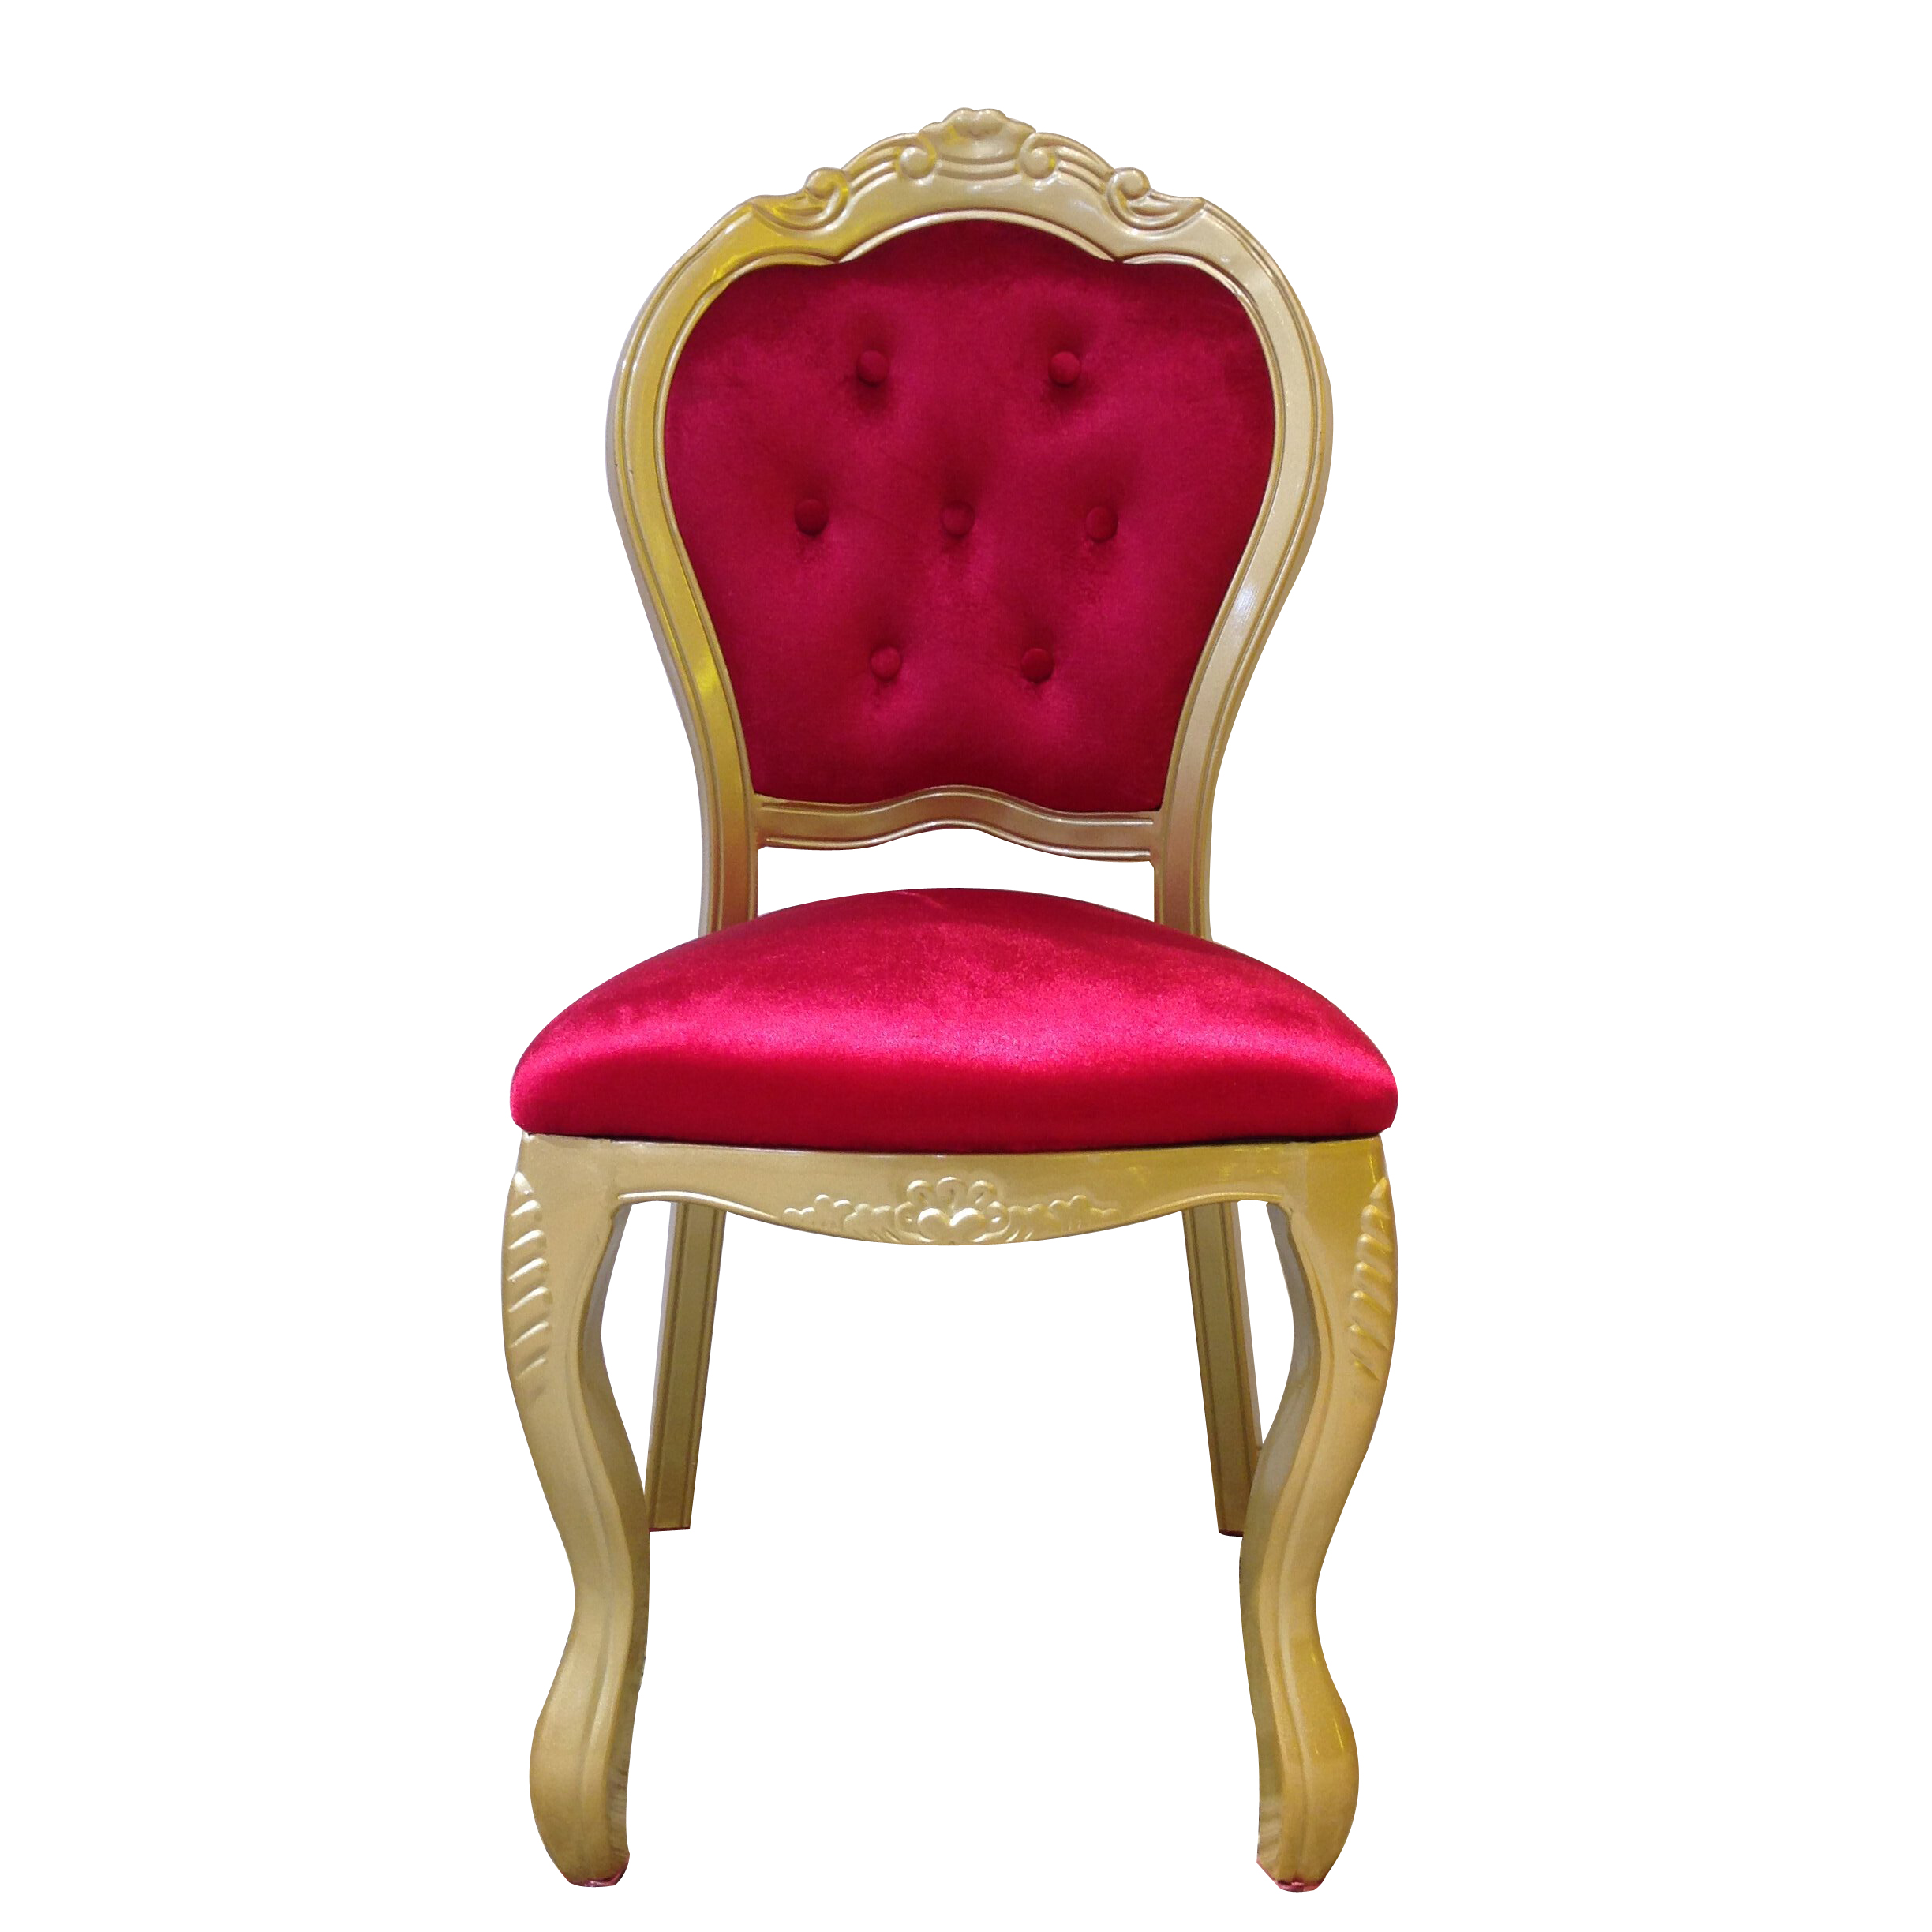 Commercial Banquet Chairs SF-L21 Featured Image